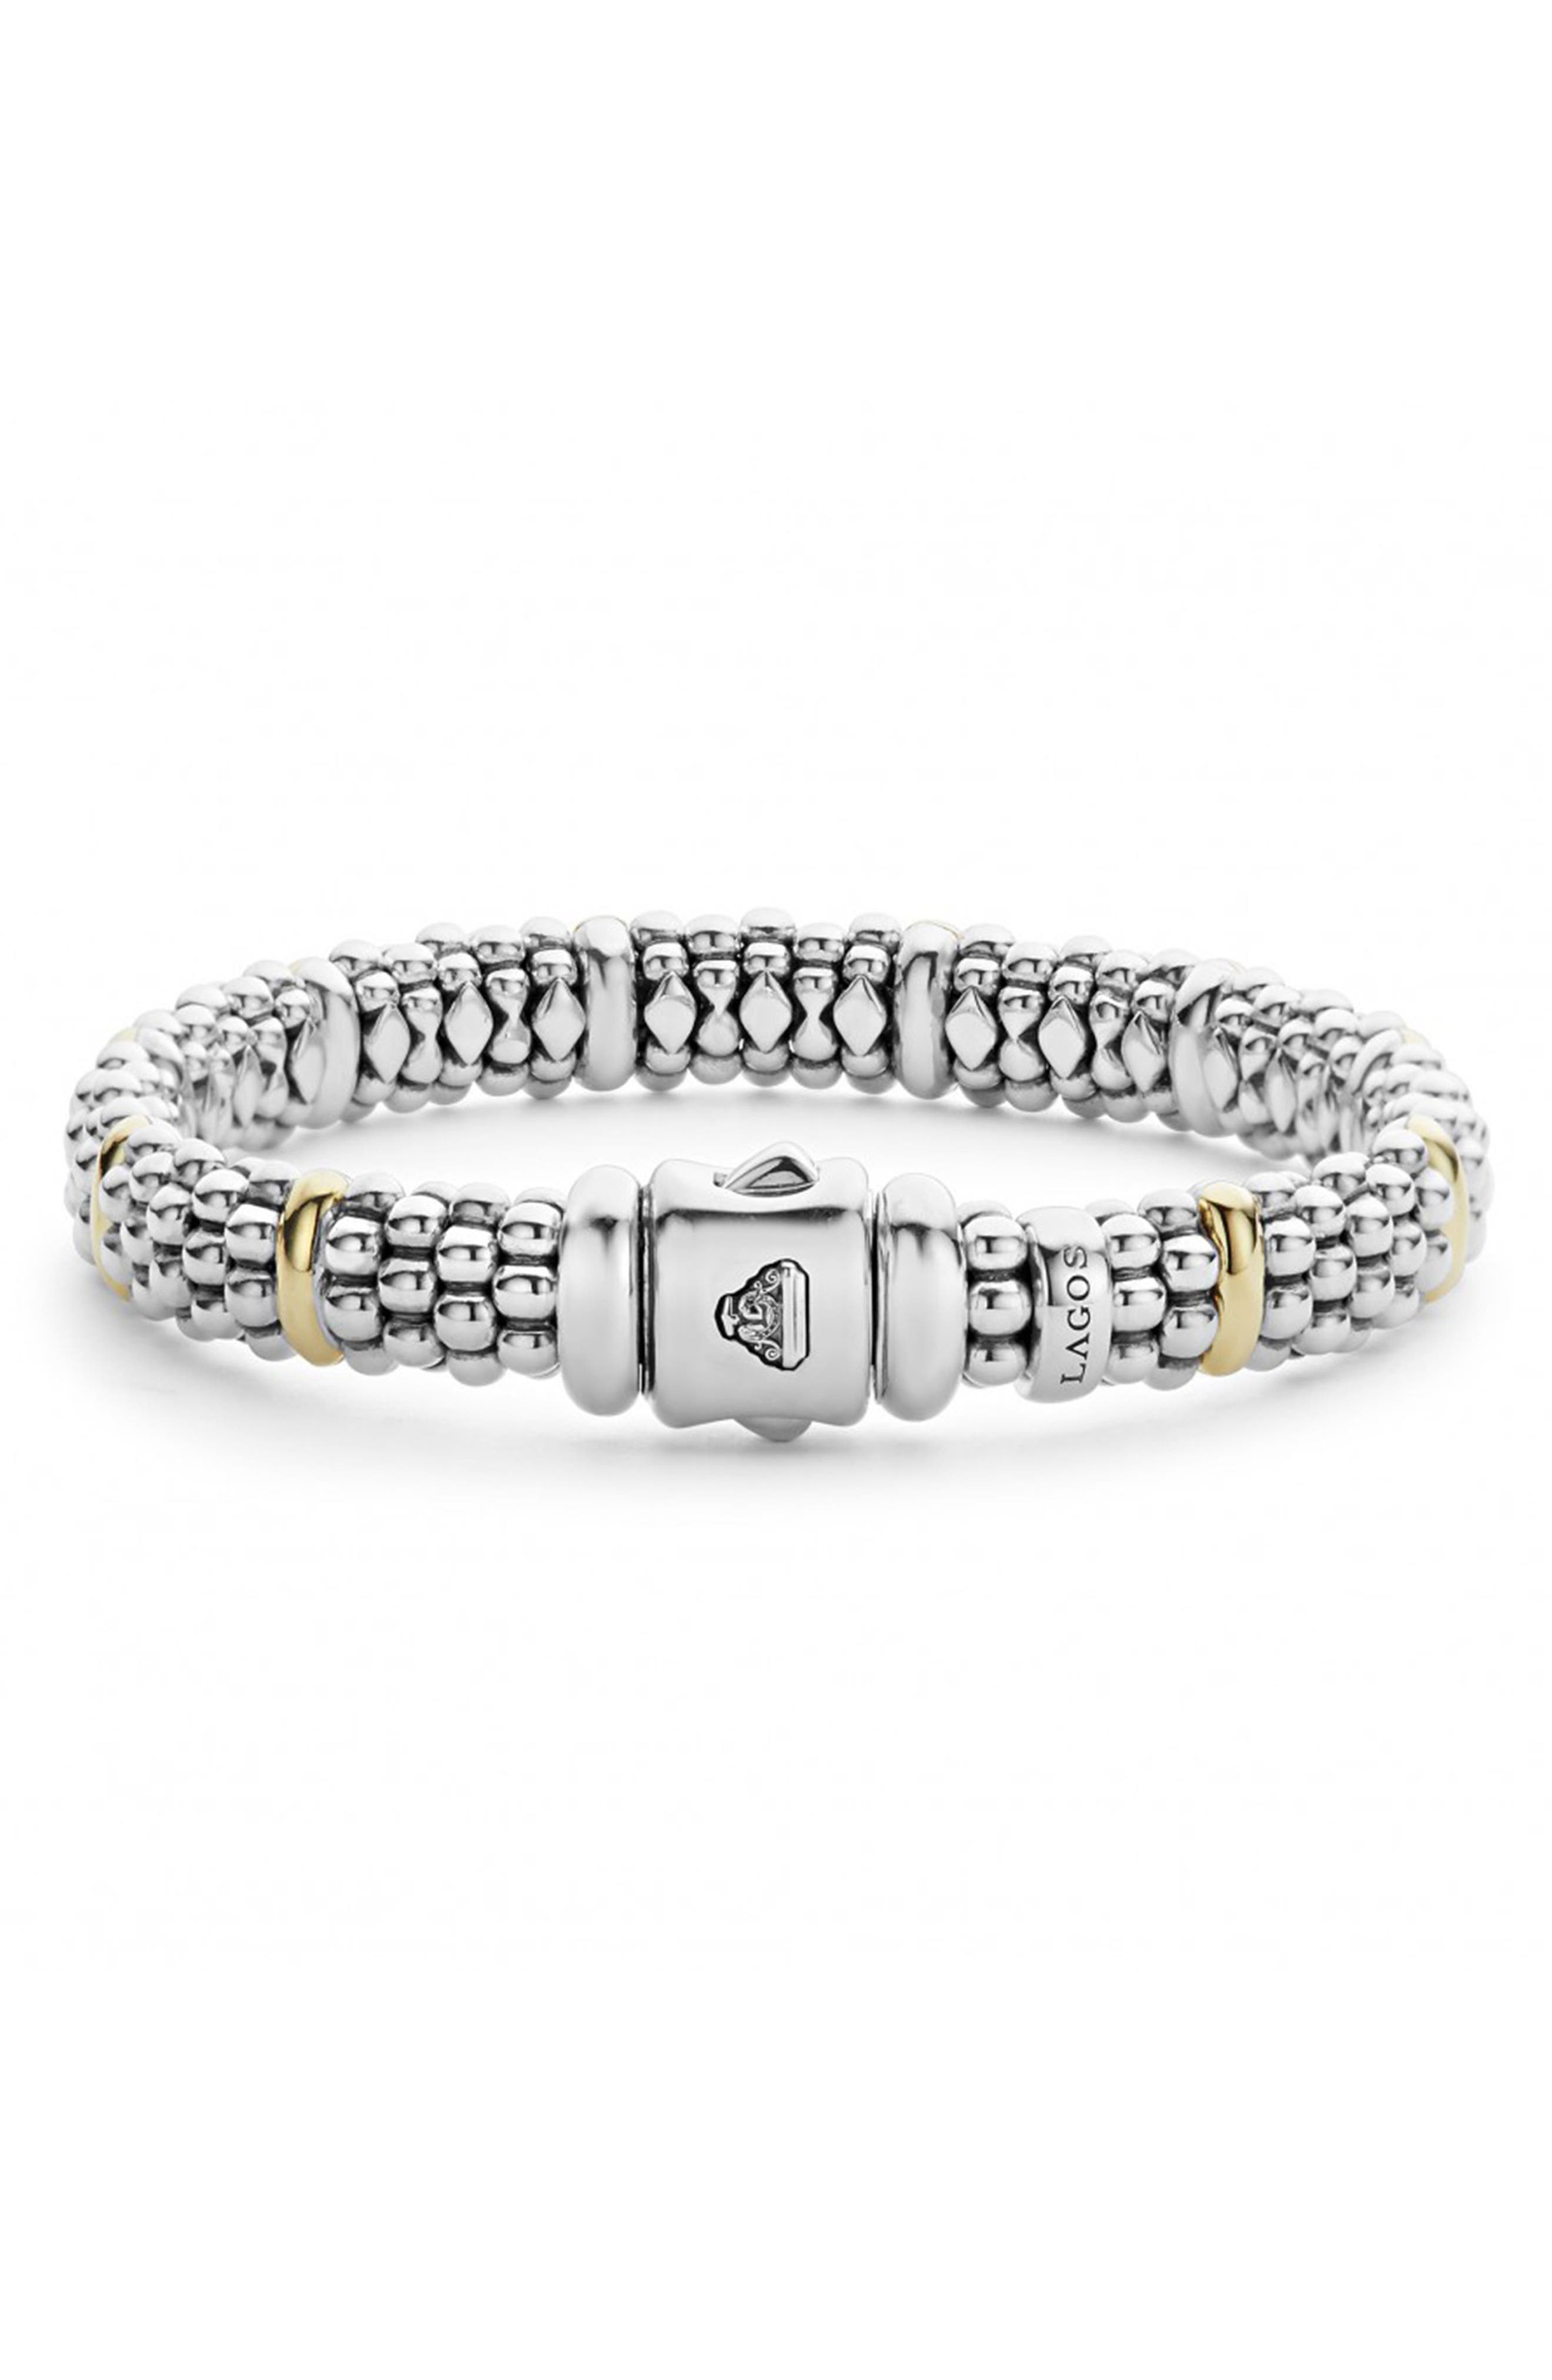 Oval Rope Caviar Bracelet,                             Alternate thumbnail 3, color,                             SILVER/ GOLD